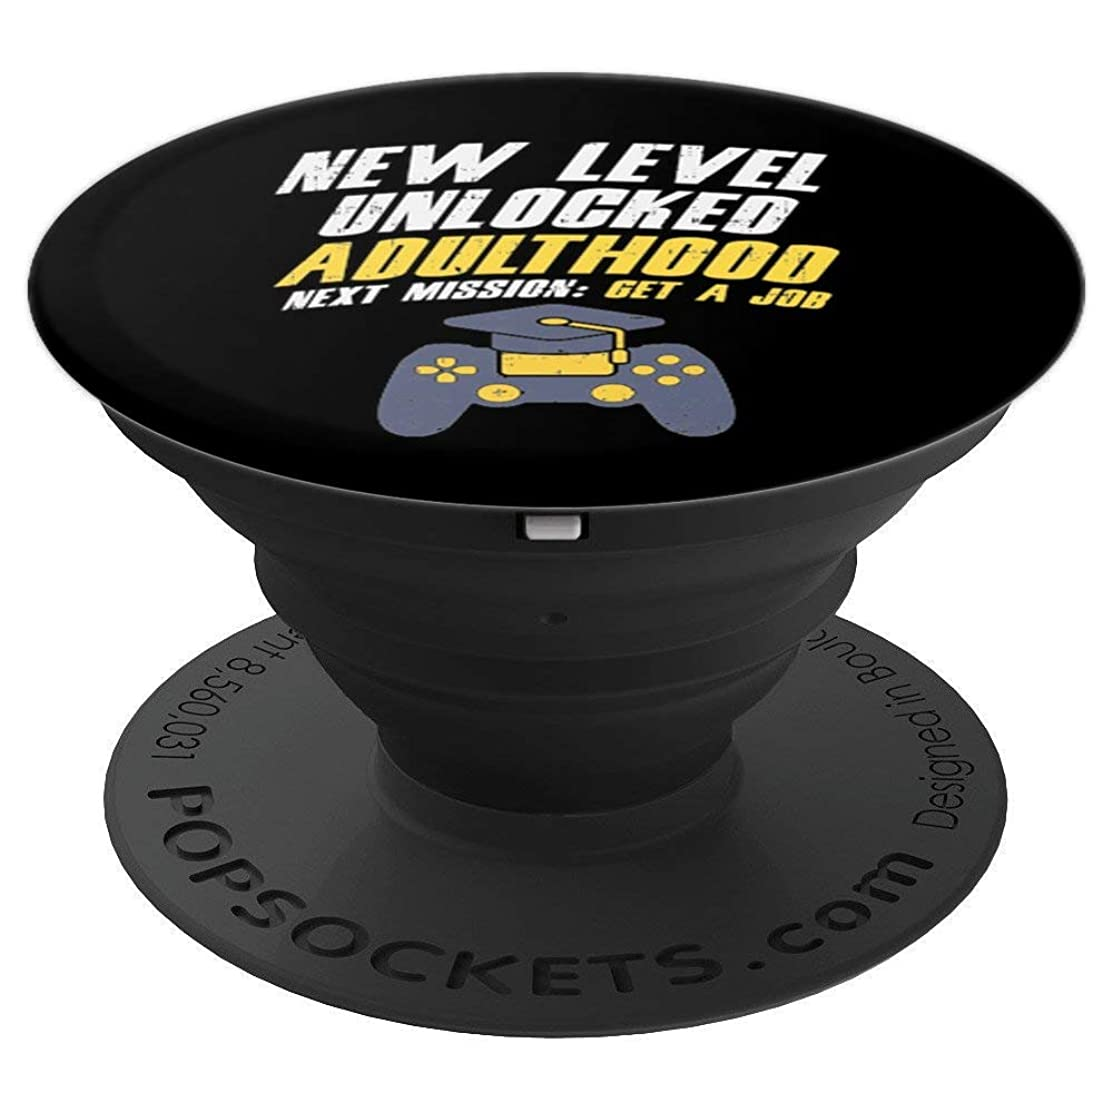 New Level Unlocked Graduation Gamer Graduate Gift Adulthood - PopSockets Grip and Stand for Phones and Tablets